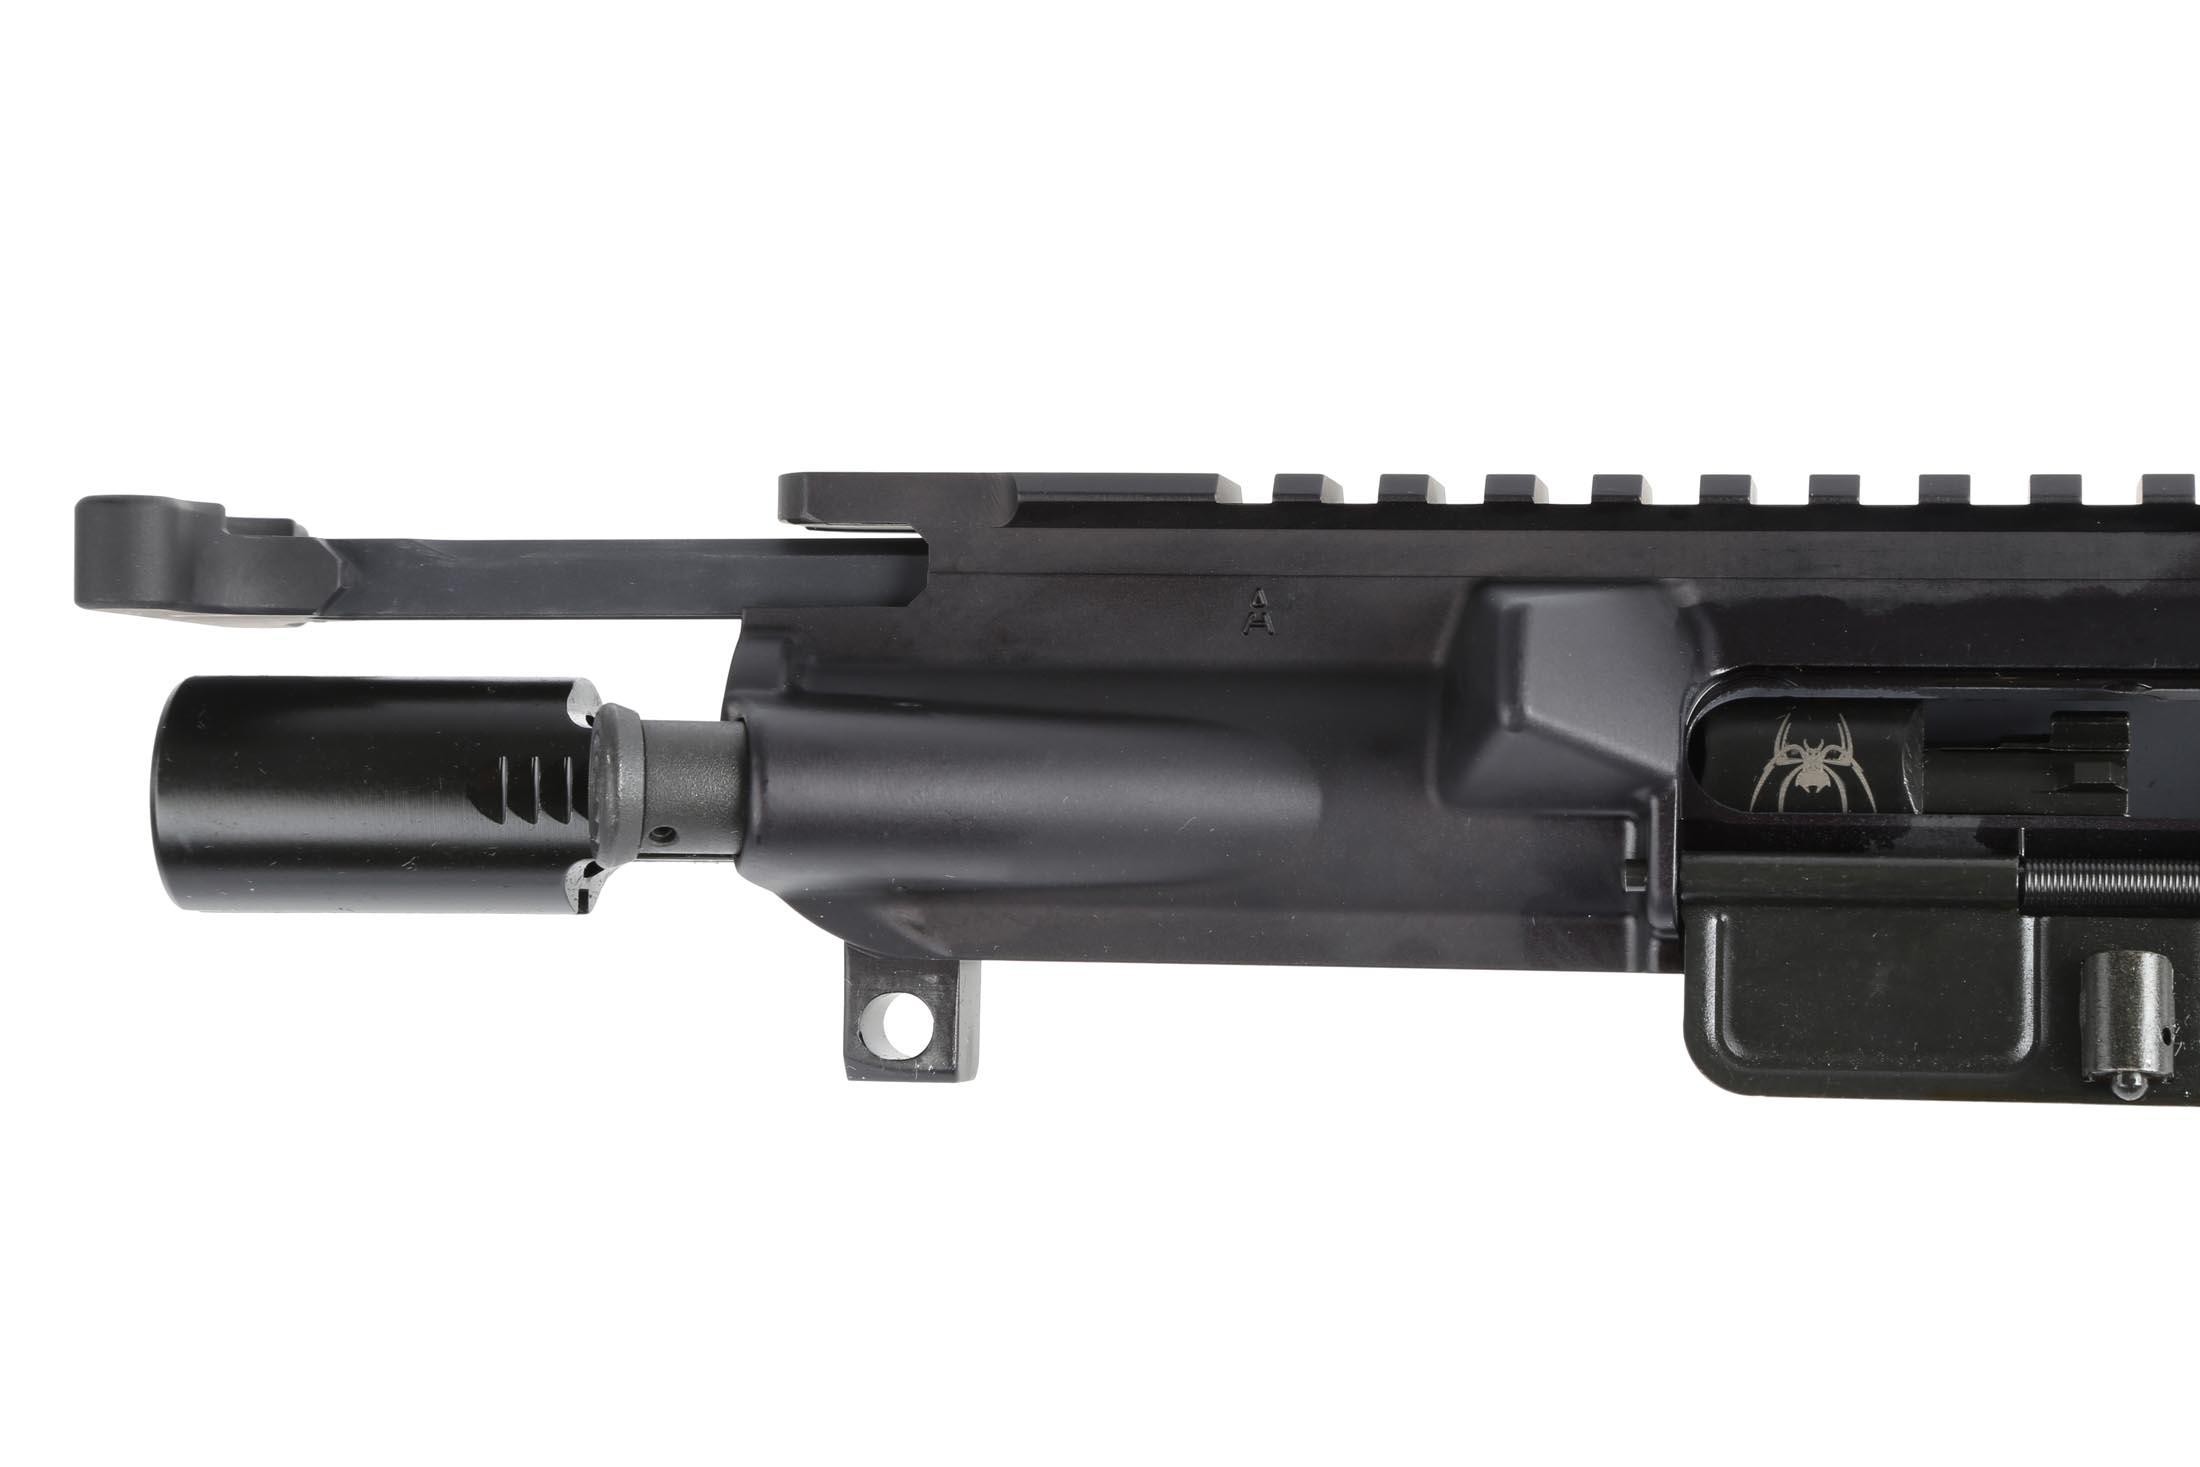 Spike's Tactical 16 5.56 NATO Complete Upper with Mid-Length Handguard